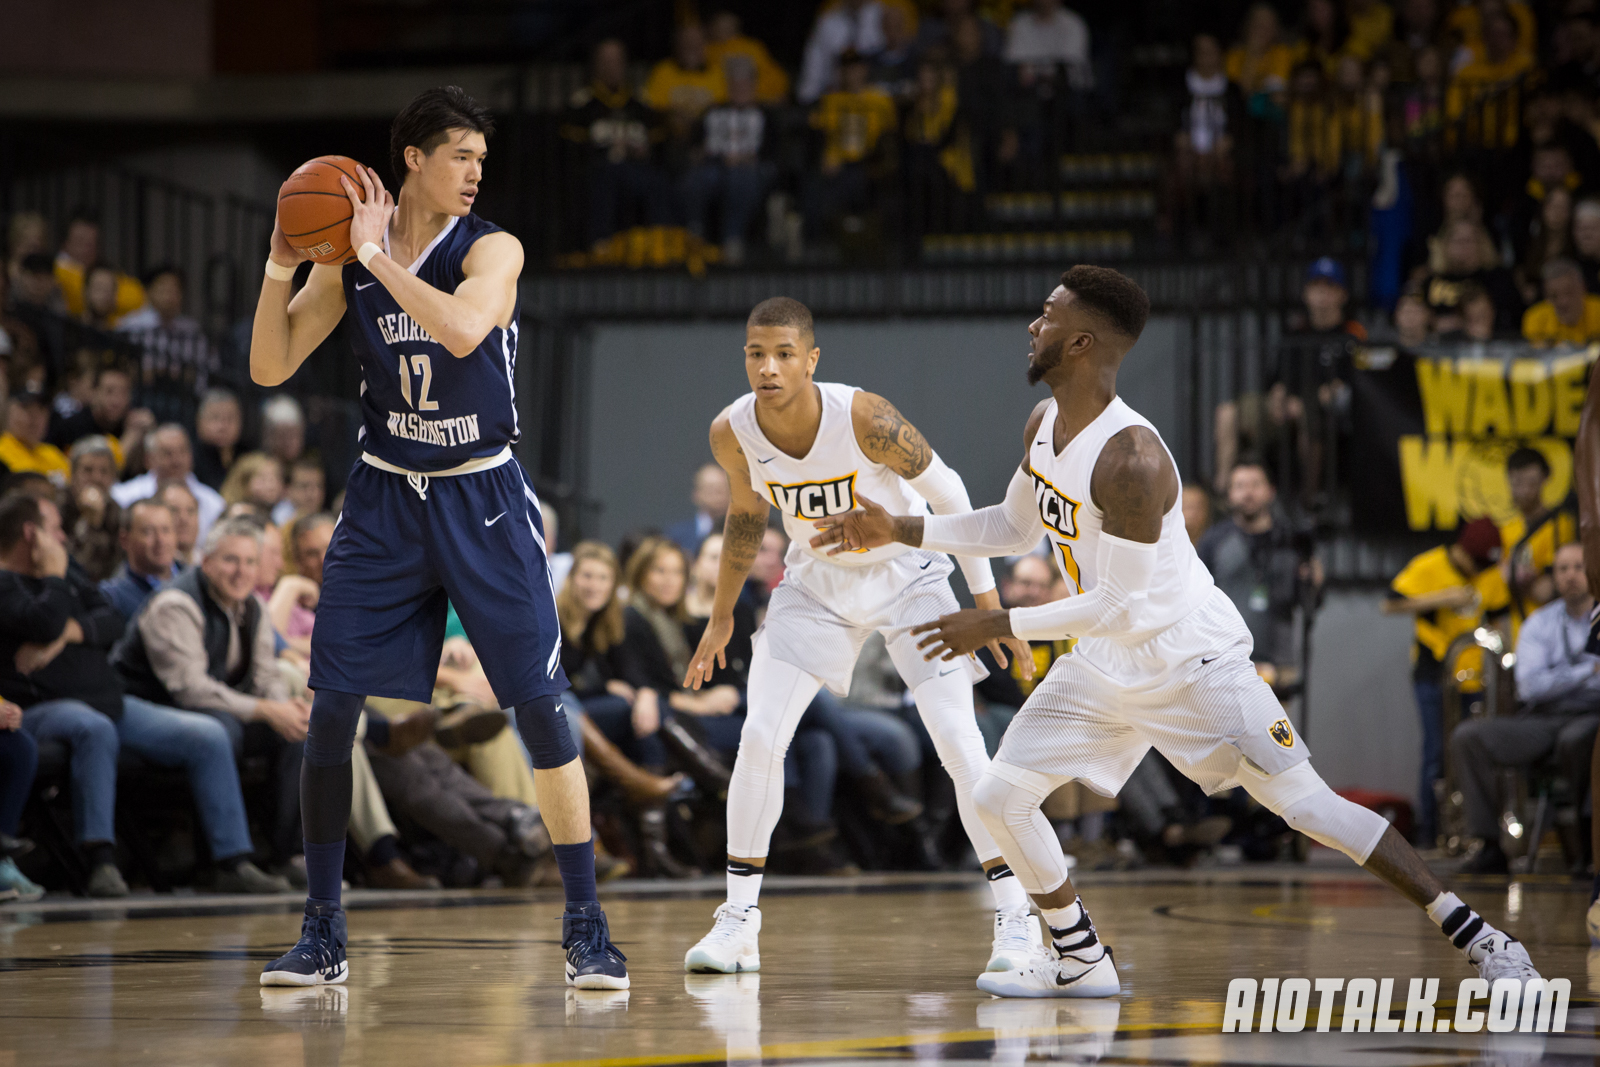 gw releases their 2017-18 non-conference schedule